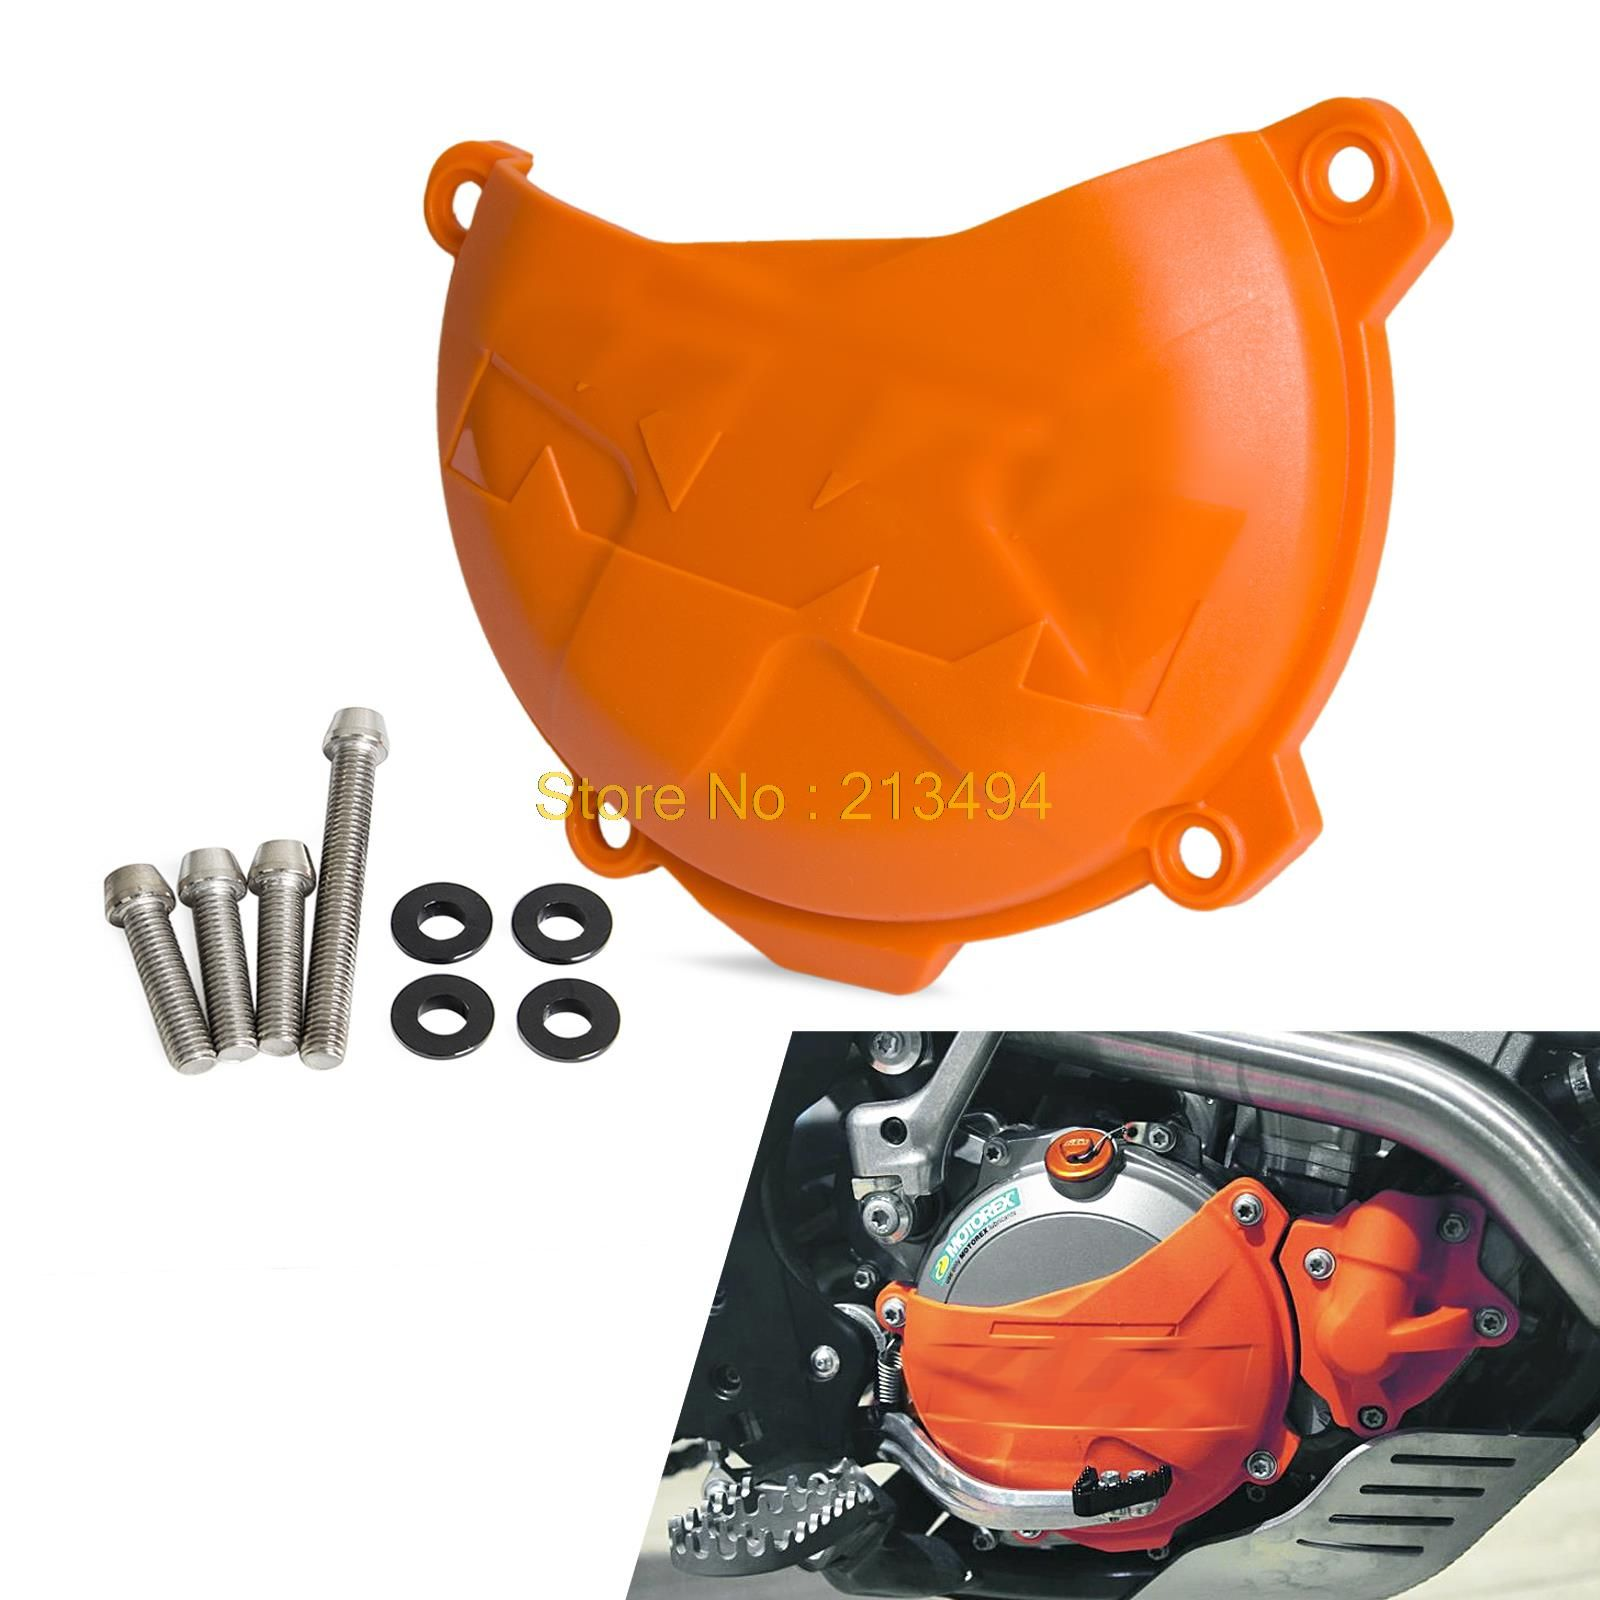 Clutch Cover Protection Cover Fits KTM 250 SX-F 250 XC-F 350 XC-F 2013 2014 2015